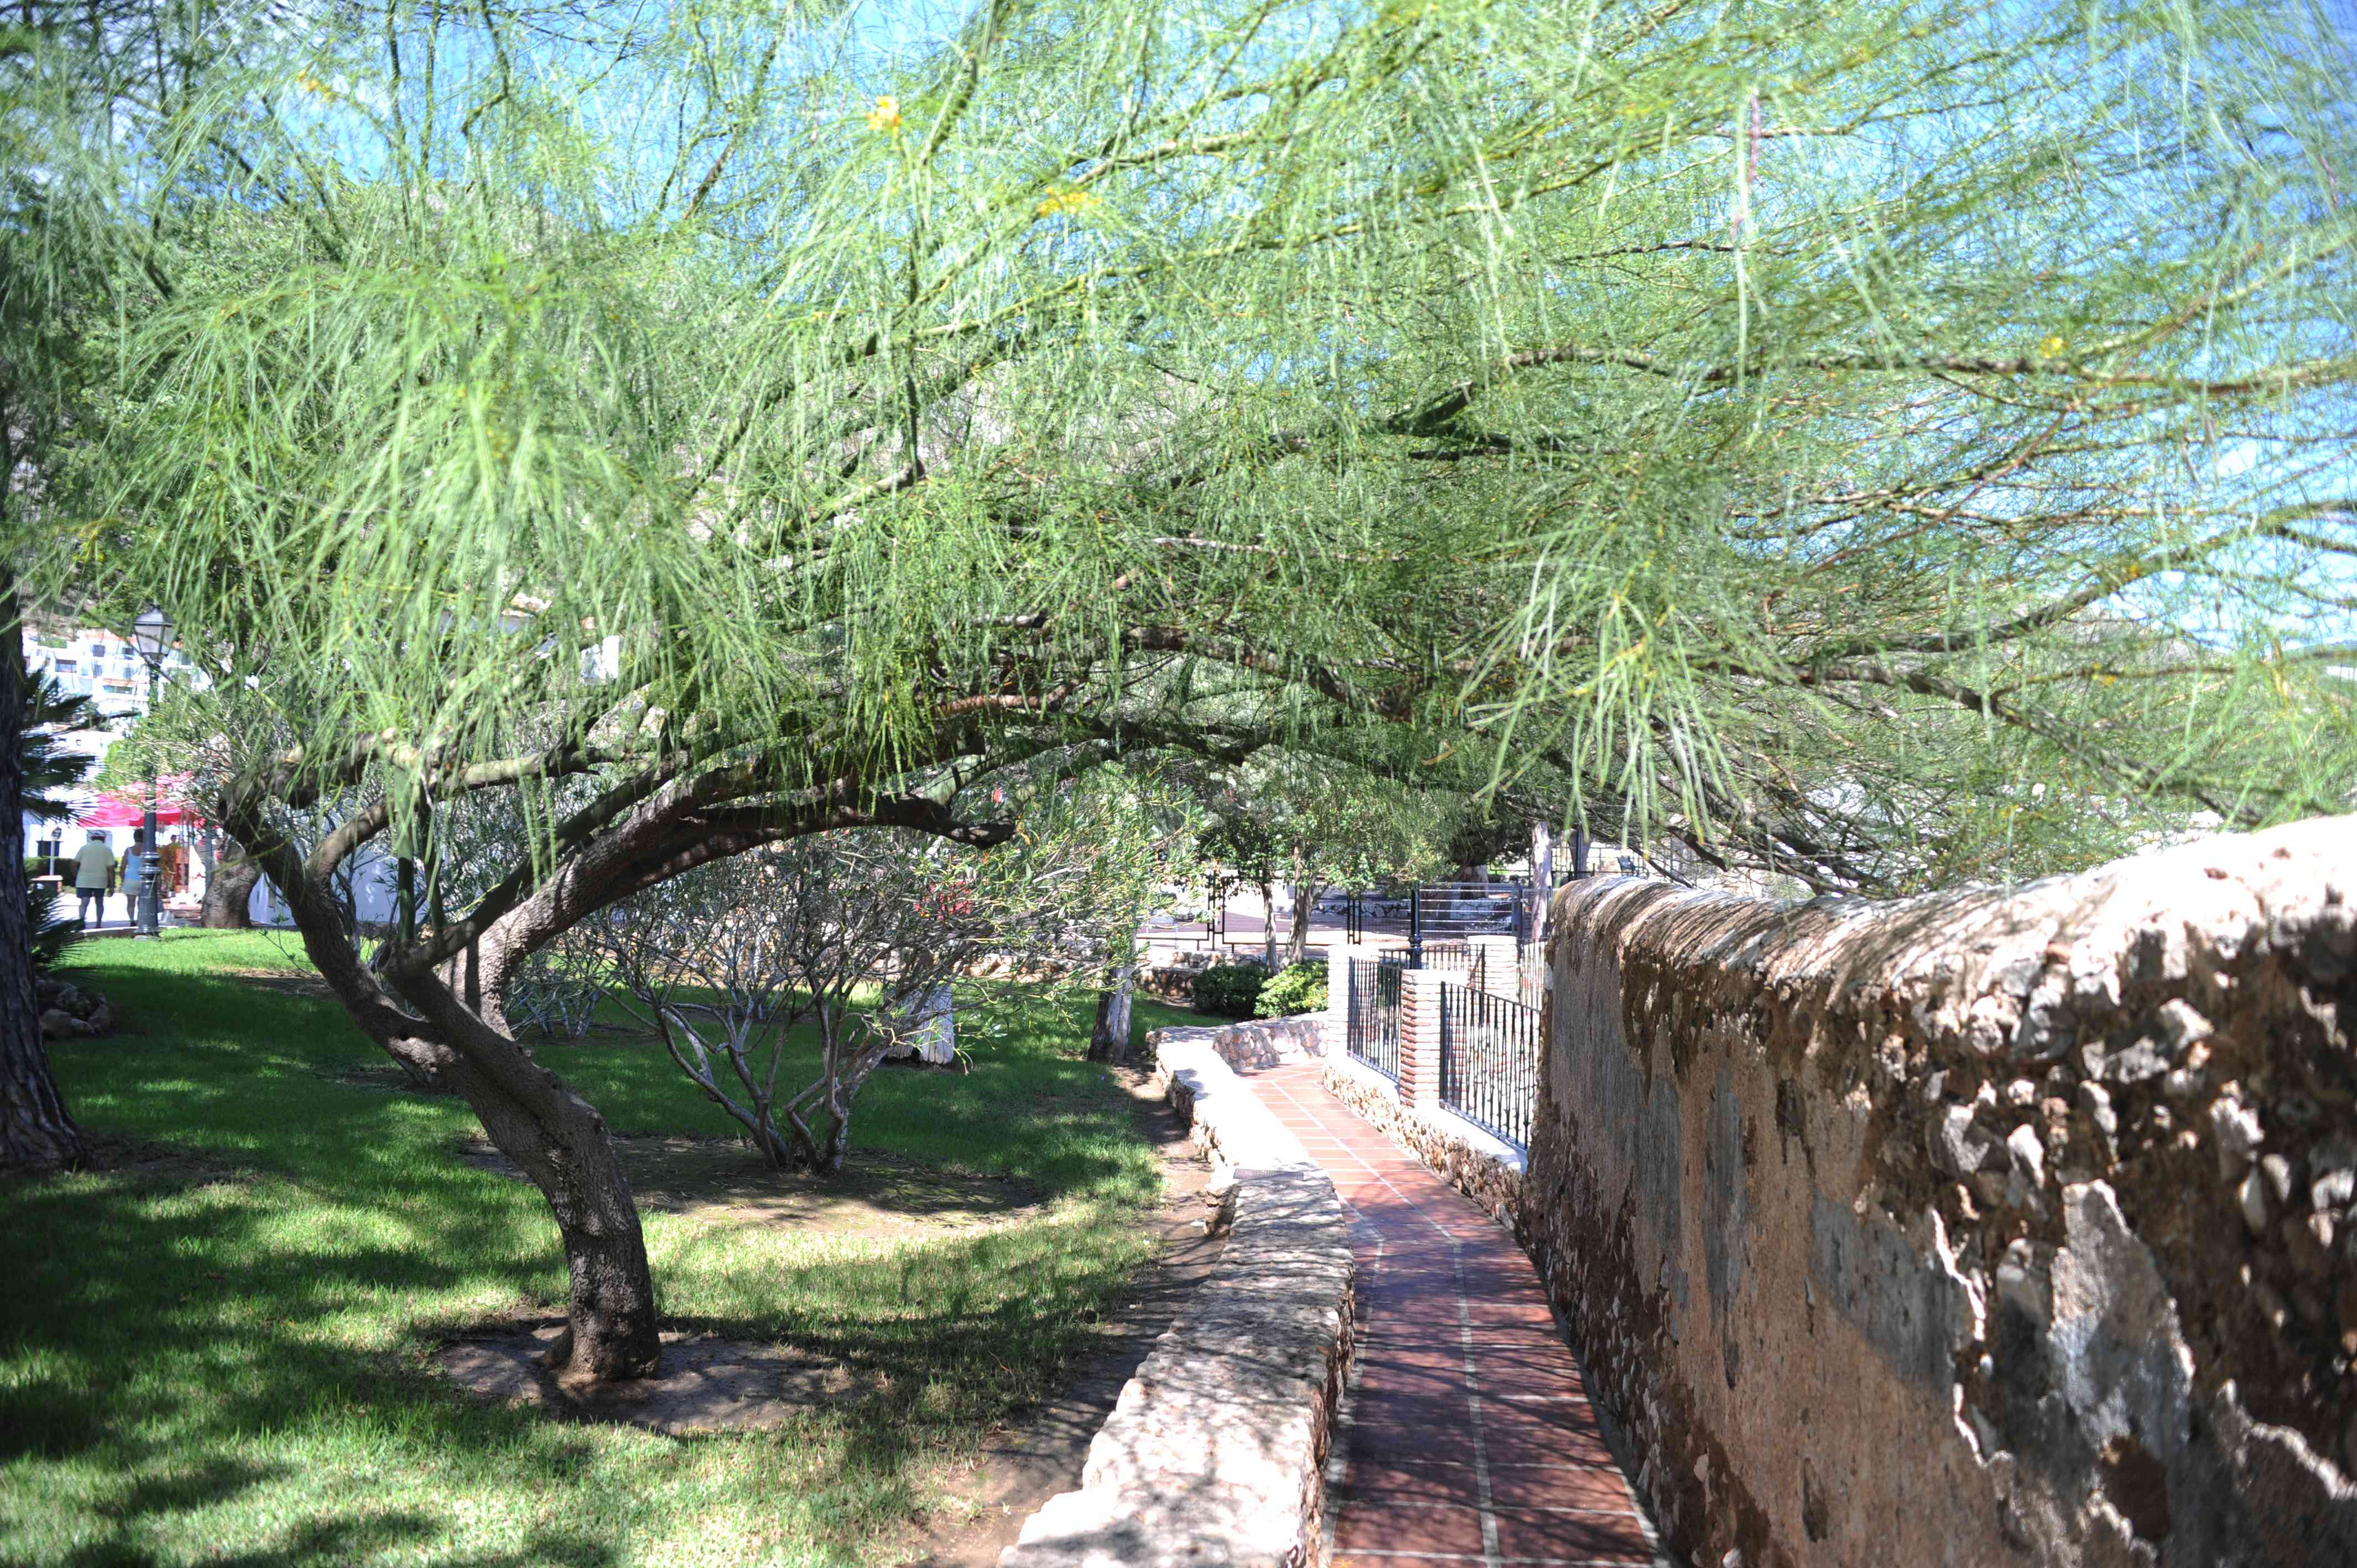 Palo verde tree with extending branches over pathway and long thin leaves